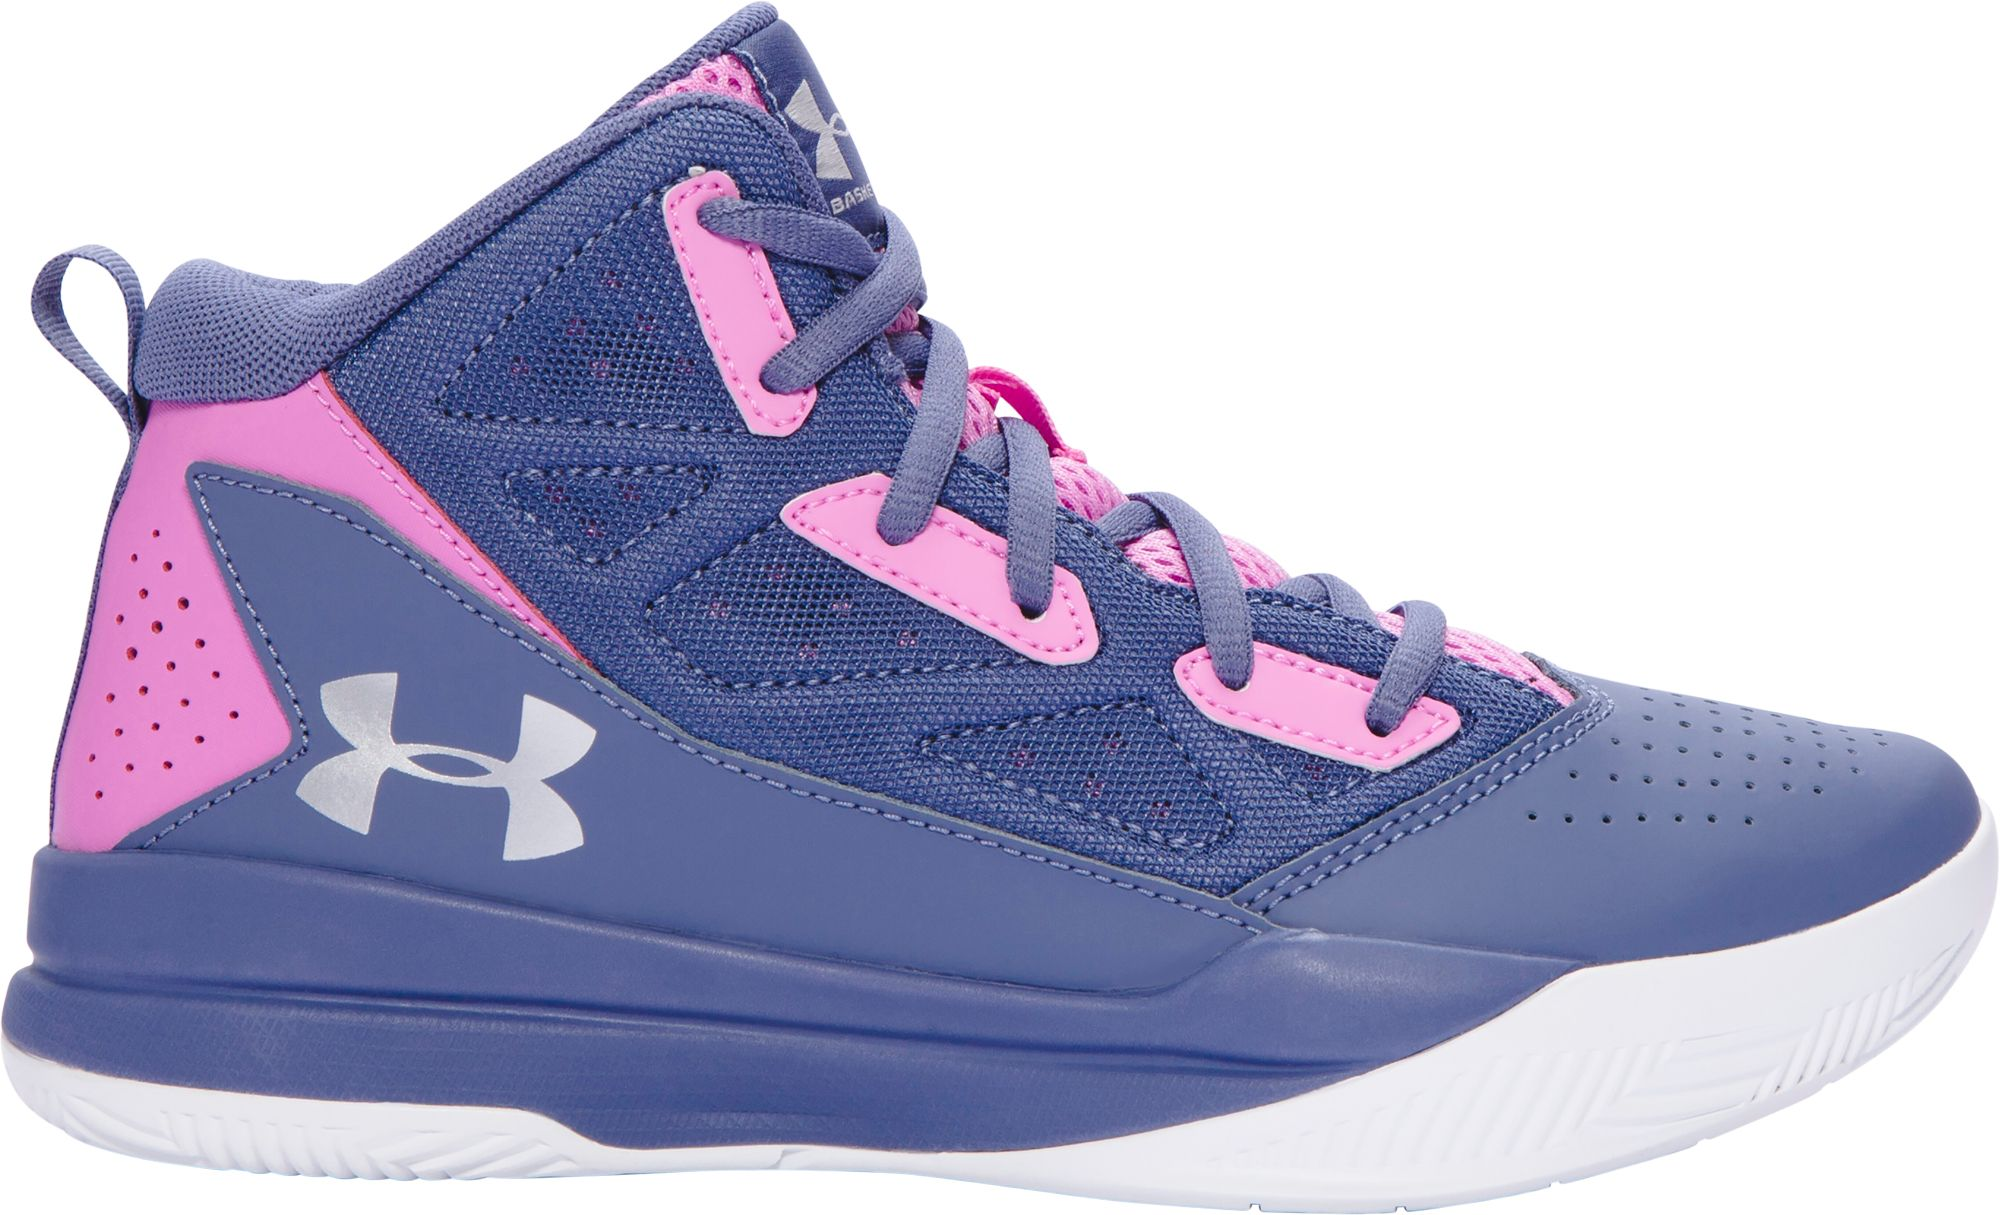 Top 10 Best Cool Basketball Shoes for Girls Comparison